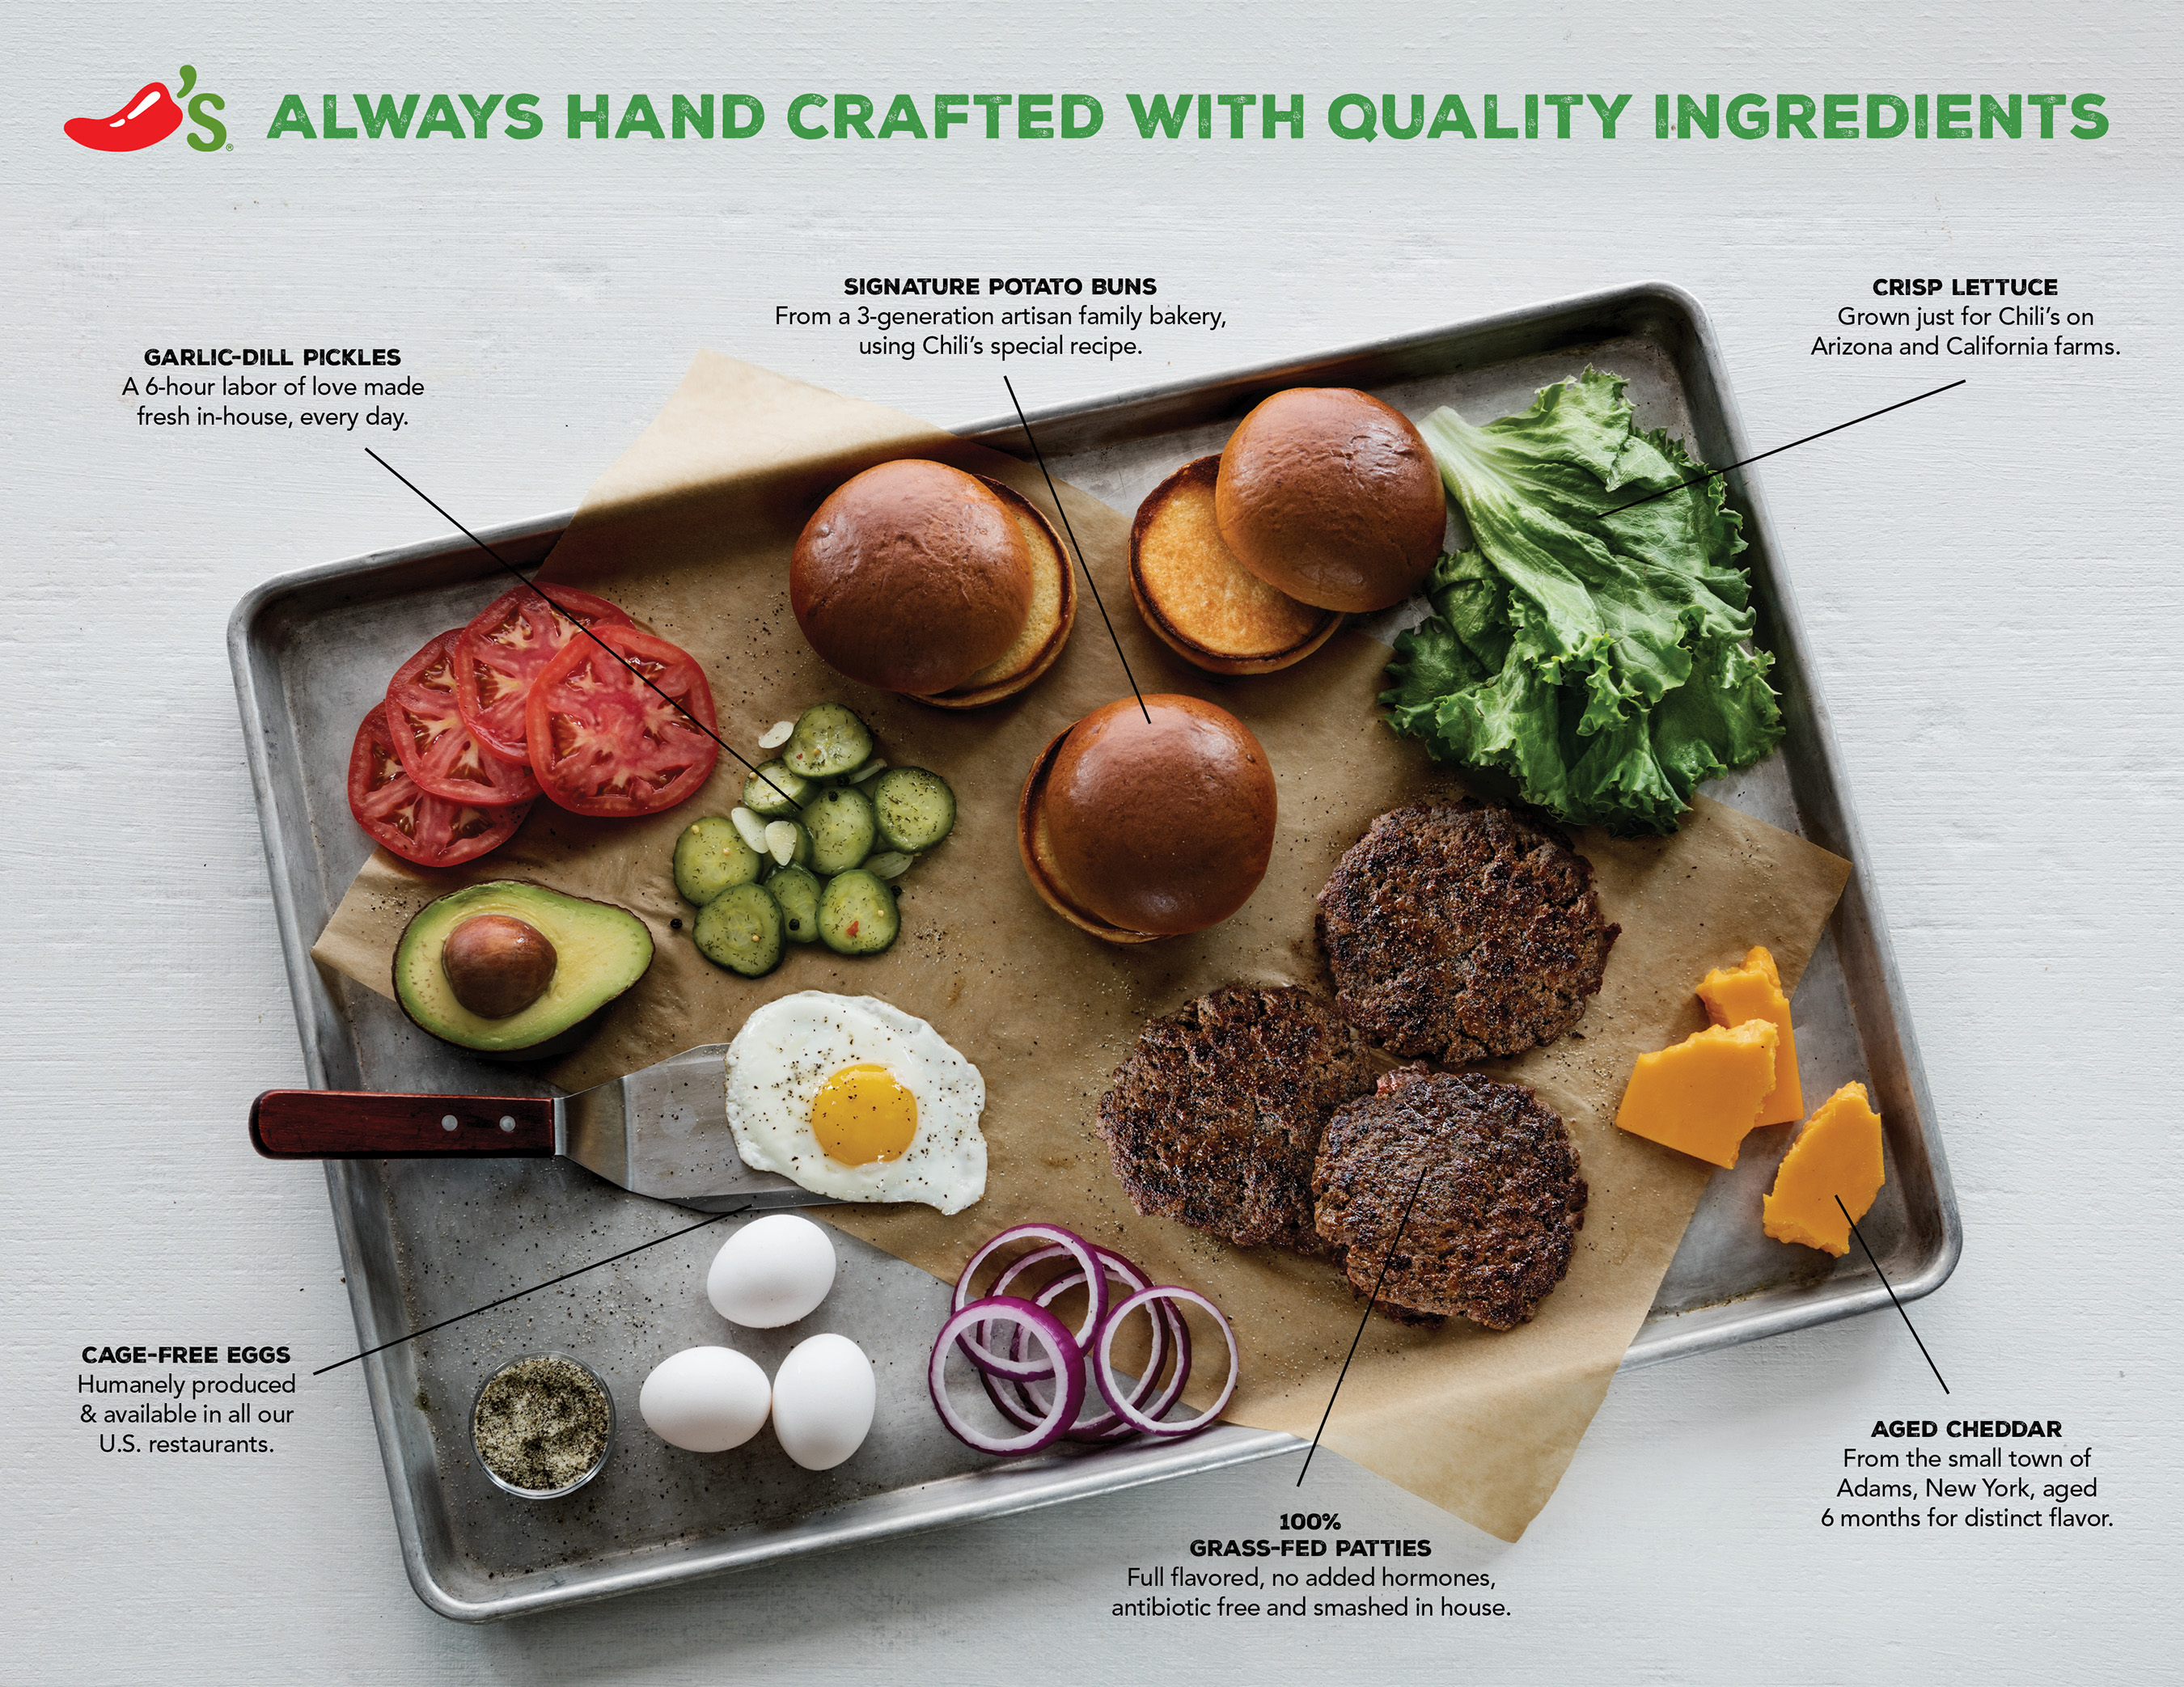 Always hand crafted with quality ingredients